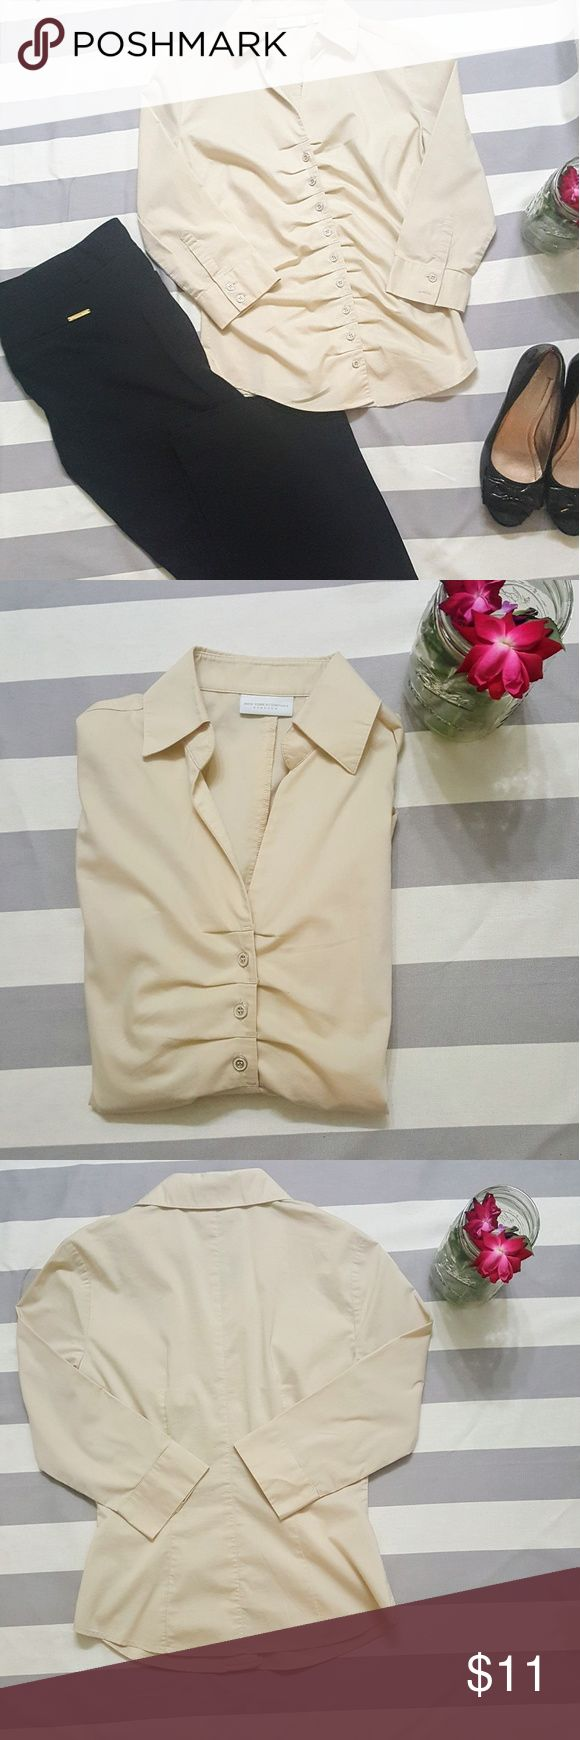 New York & Company stretch button down! XS. This neutral blouse is great for work! Wear it with dress pants or a nice pencil skirt. It's very versatile! It's in like new condition. It's a light cream color and size is XS. It's stretchy and comfortable! There are bunching detail around the buttons. Made with 60% Cotton, 35% Polyester and 5% Spandex.   Measurements  Pit to pit- 18 inches  Length from top of shoulder to bottom- 23 inches  Thanks for looking, don't forget to bundle! New York…